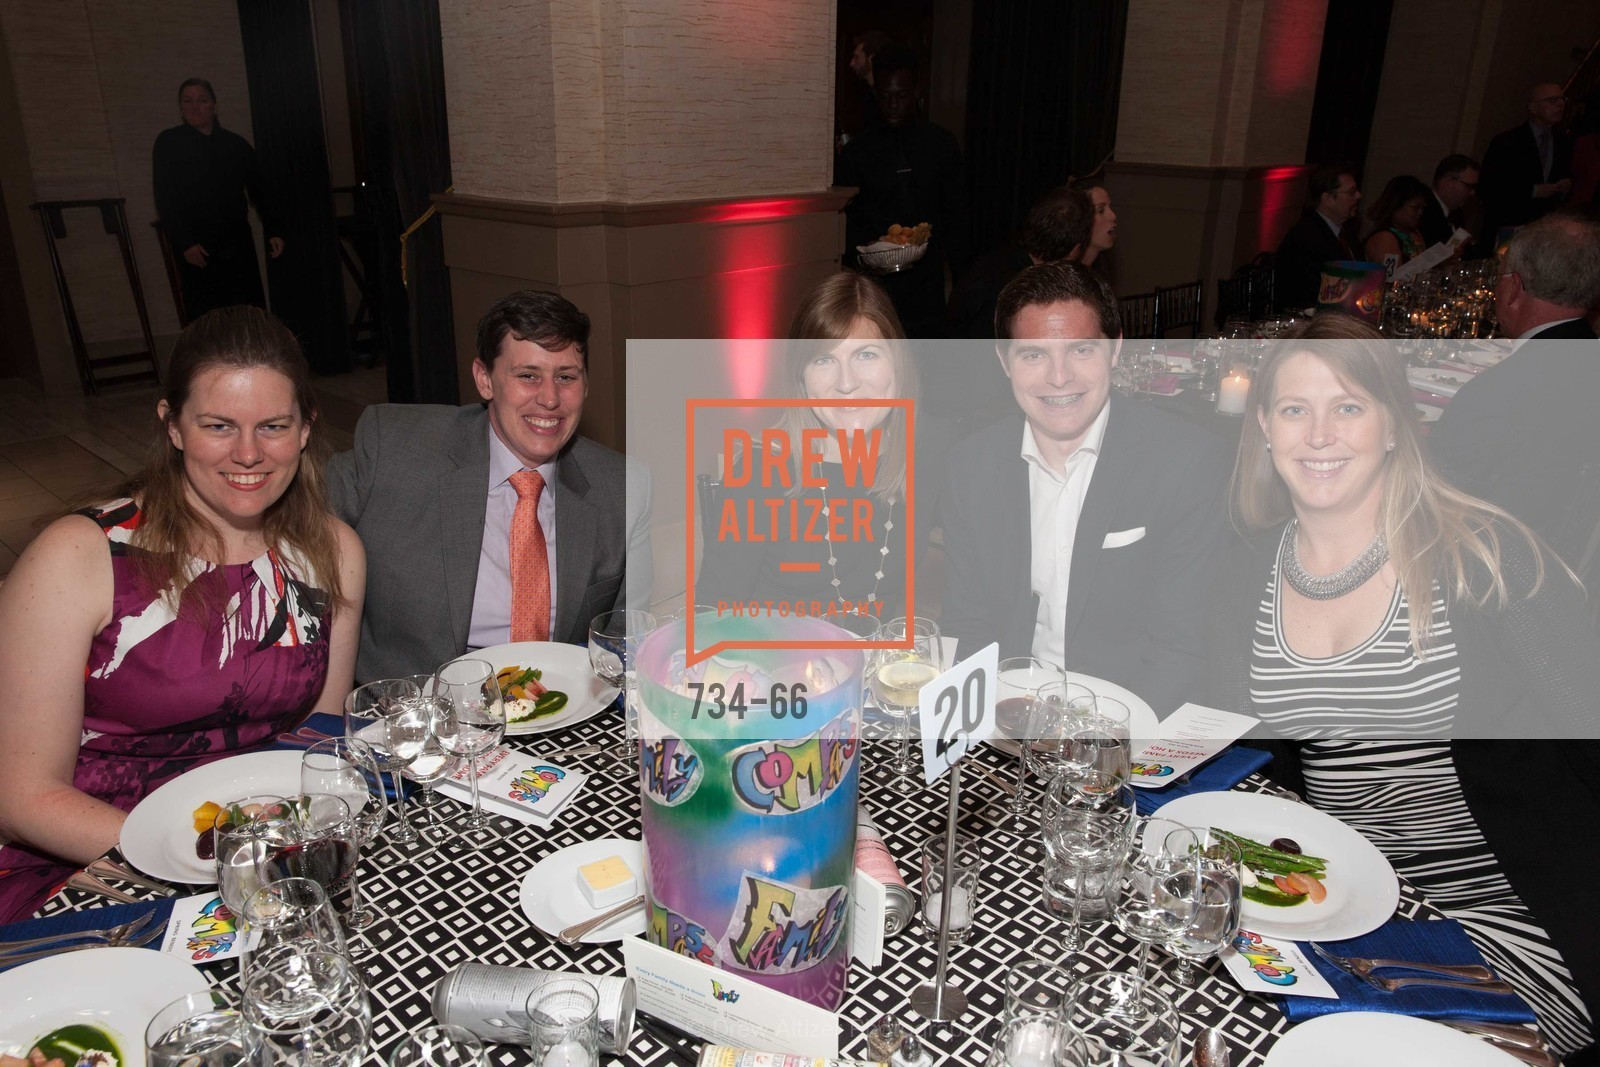 Extras, Compass Family Services Annual Spring Benefit - Every Family Needs A Home, April 22nd, 2015, Photo